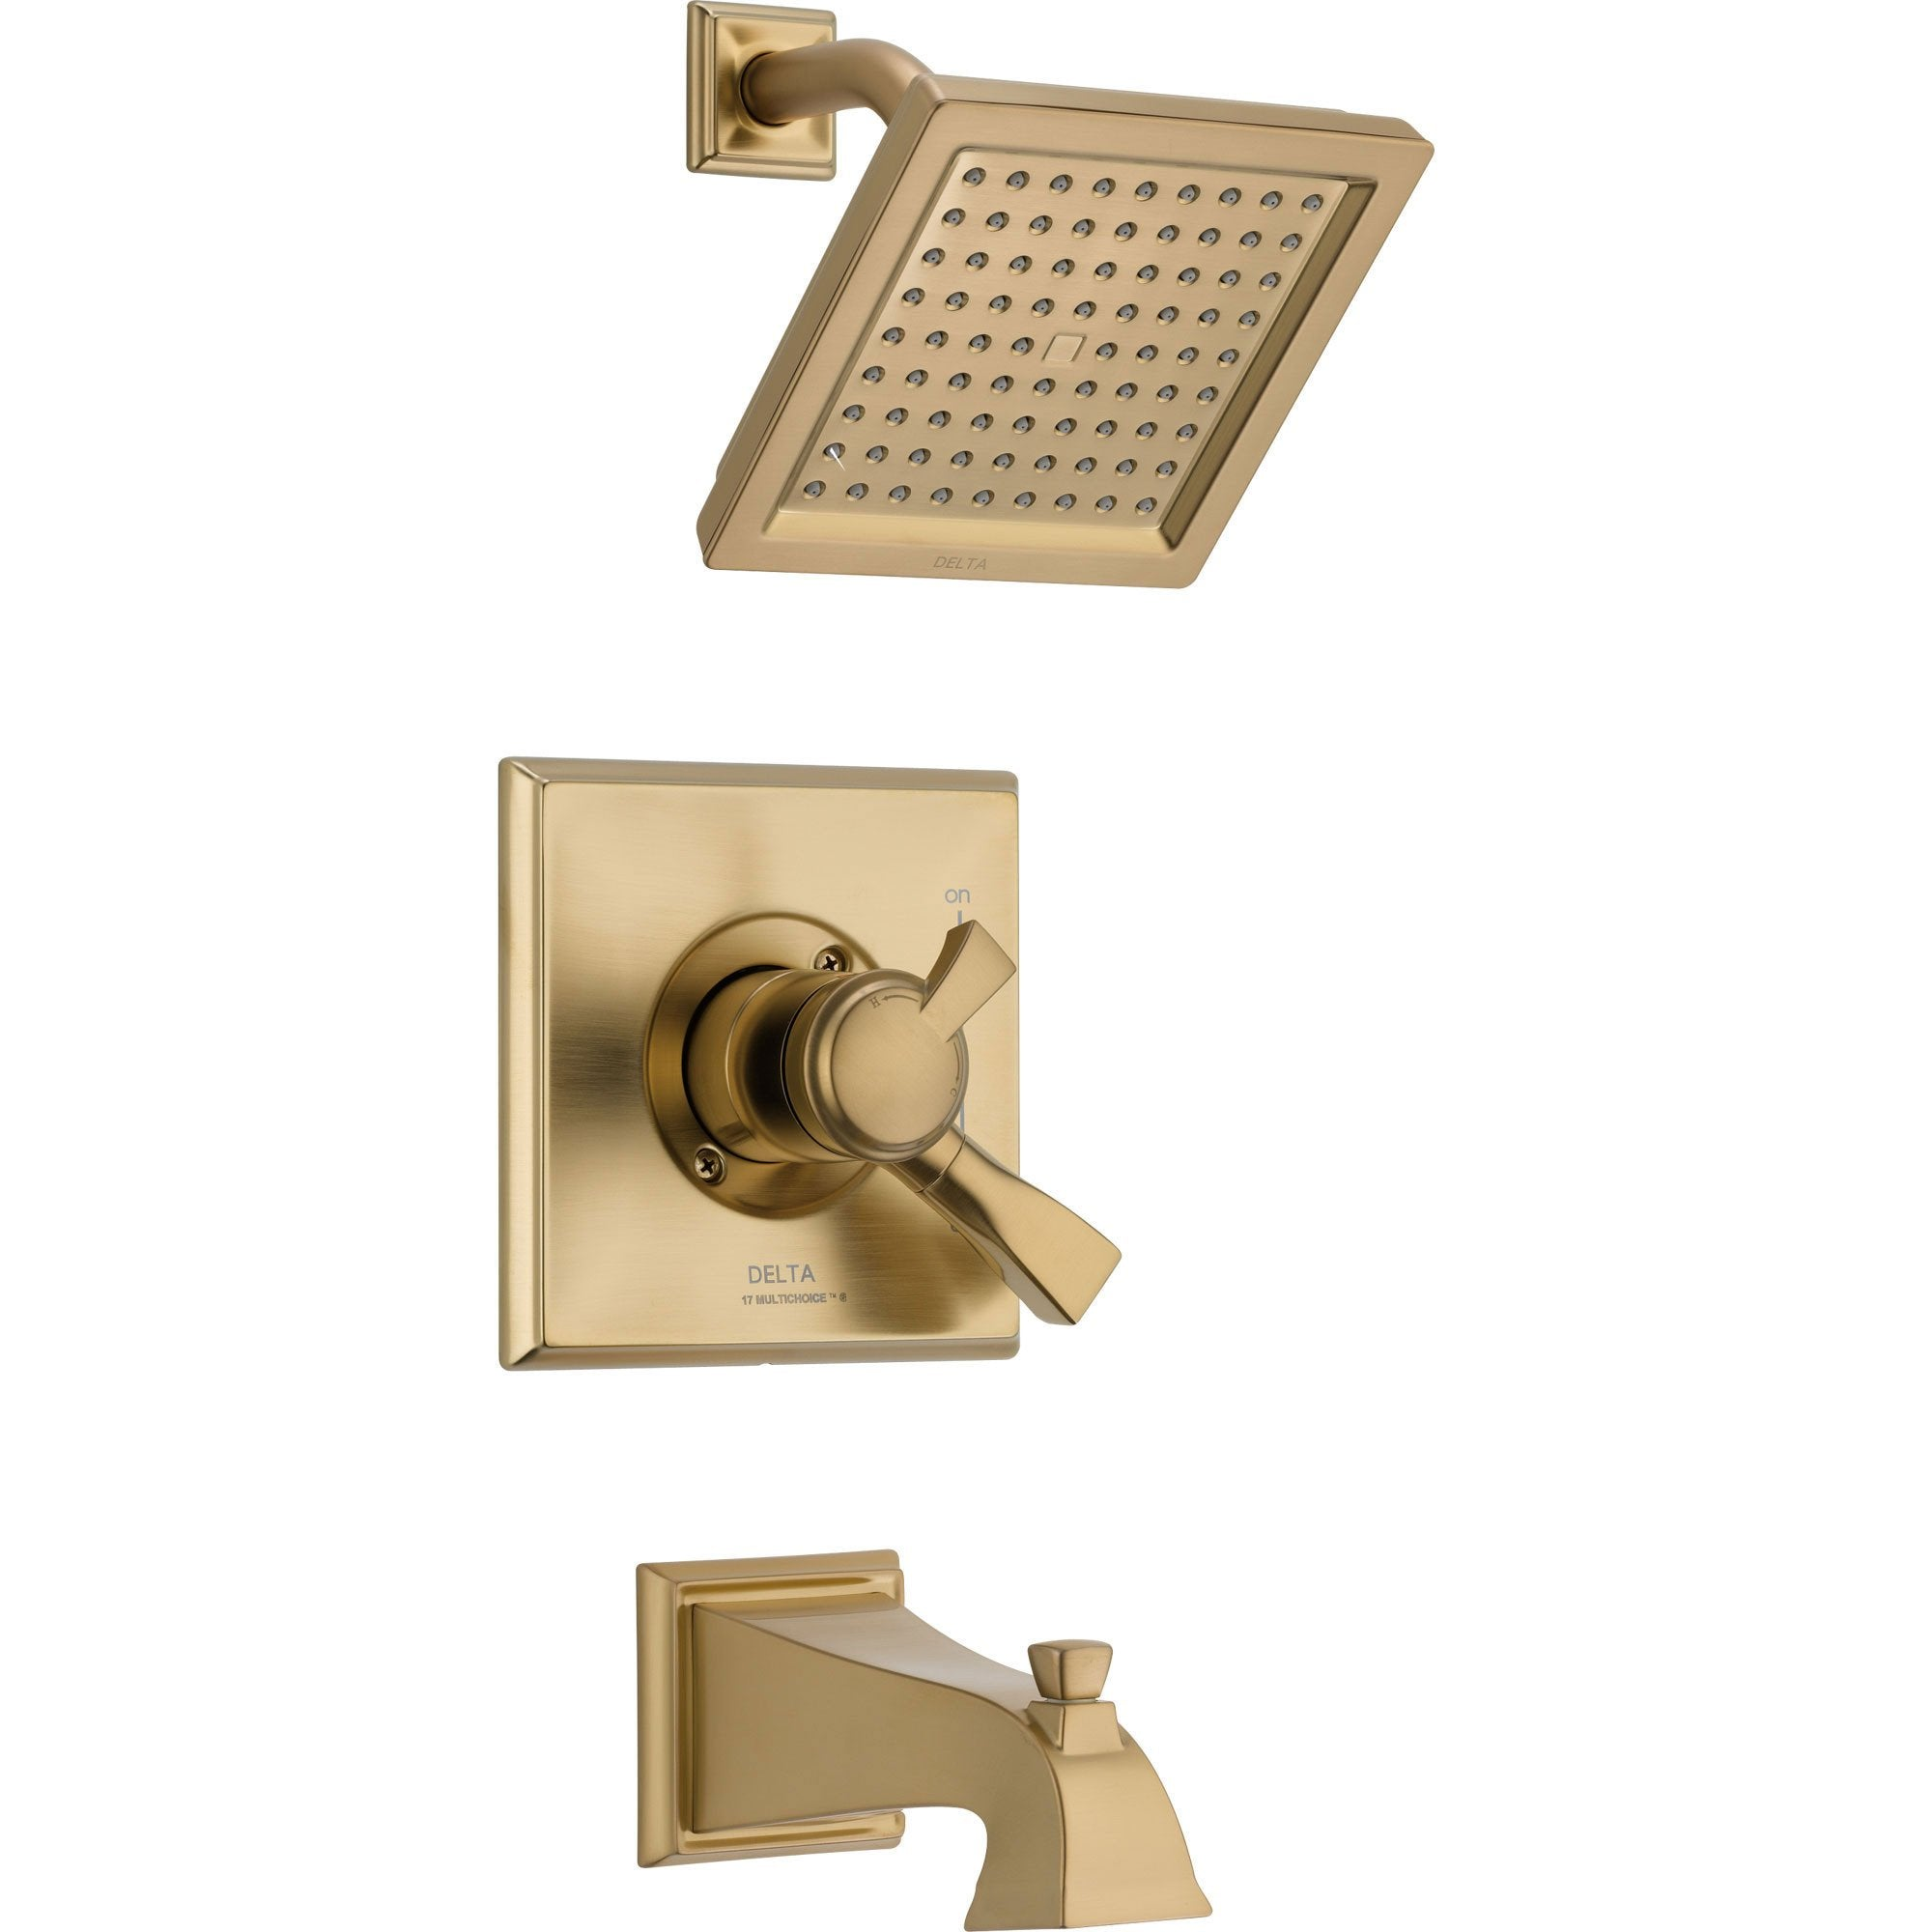 Delta Dryden Temp/Volume Champagne Bronze Tub & Shower Faucet with Valve D371V